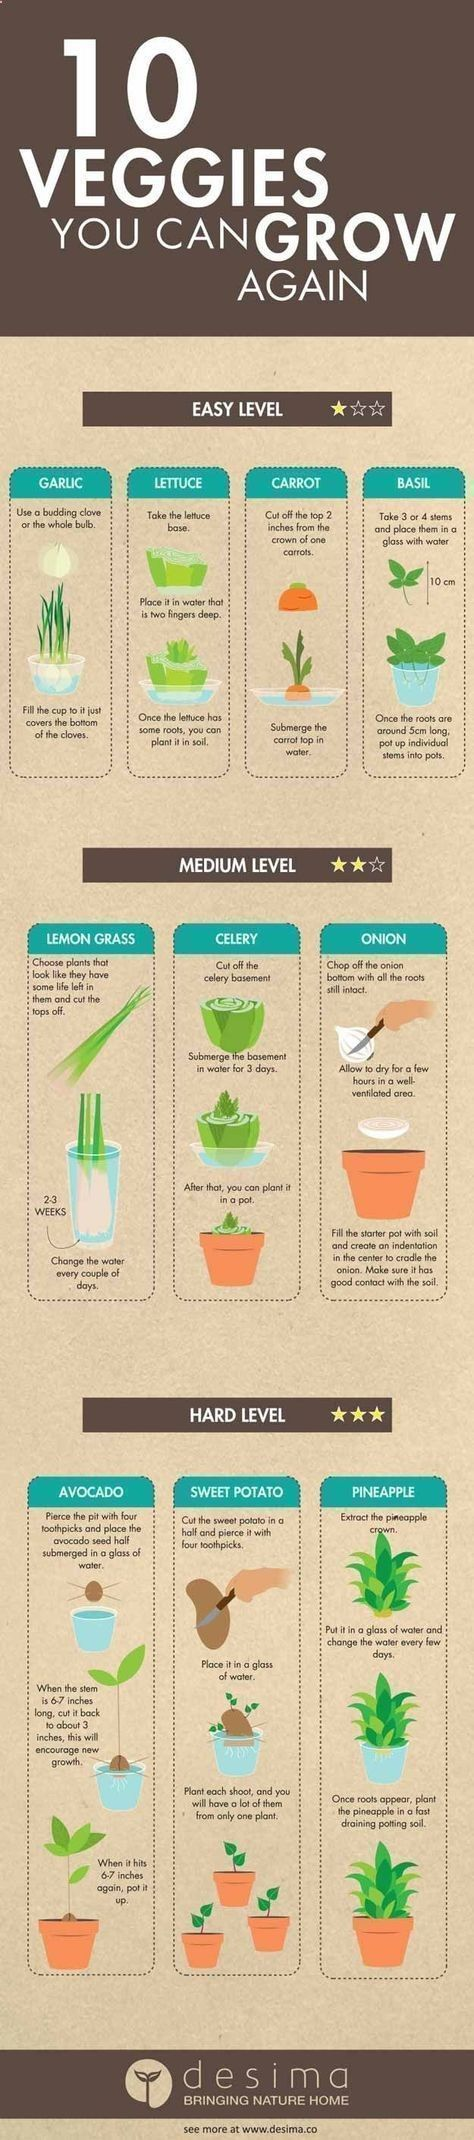 Terrace Garden - 10 Vegetables You Can Grow From Scraps | Serve Fresh Vegetables & Spices Everyday with these EASY DIY Gardening Tutorials by Pioneer Settler at pioneersettler.co... This time, we will know how to decorate your balcony and your garden easily with plants #growingvegetablesfromscraps #howtogrowingvegetables #balconygarden